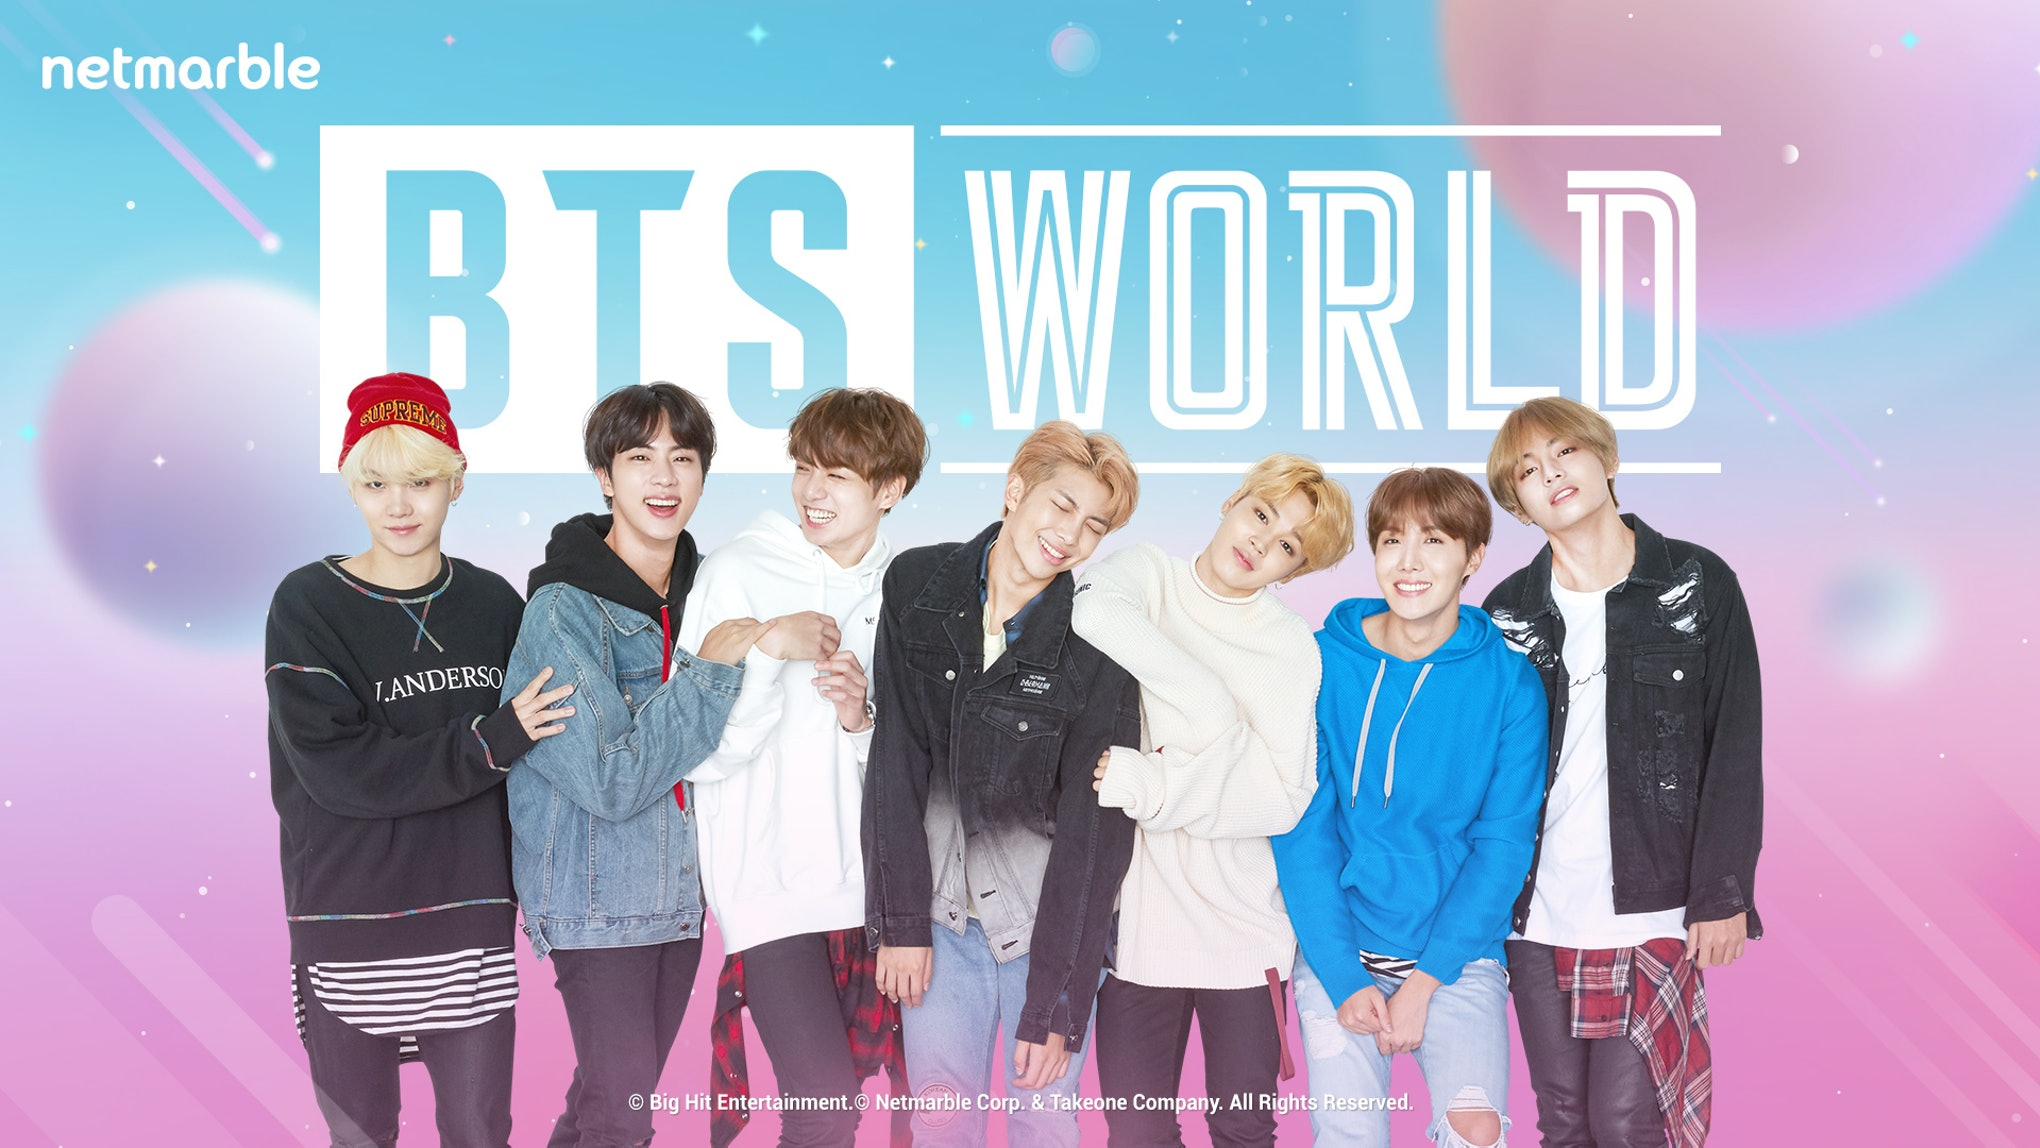 Image from BTS World and Netmarble Corp.